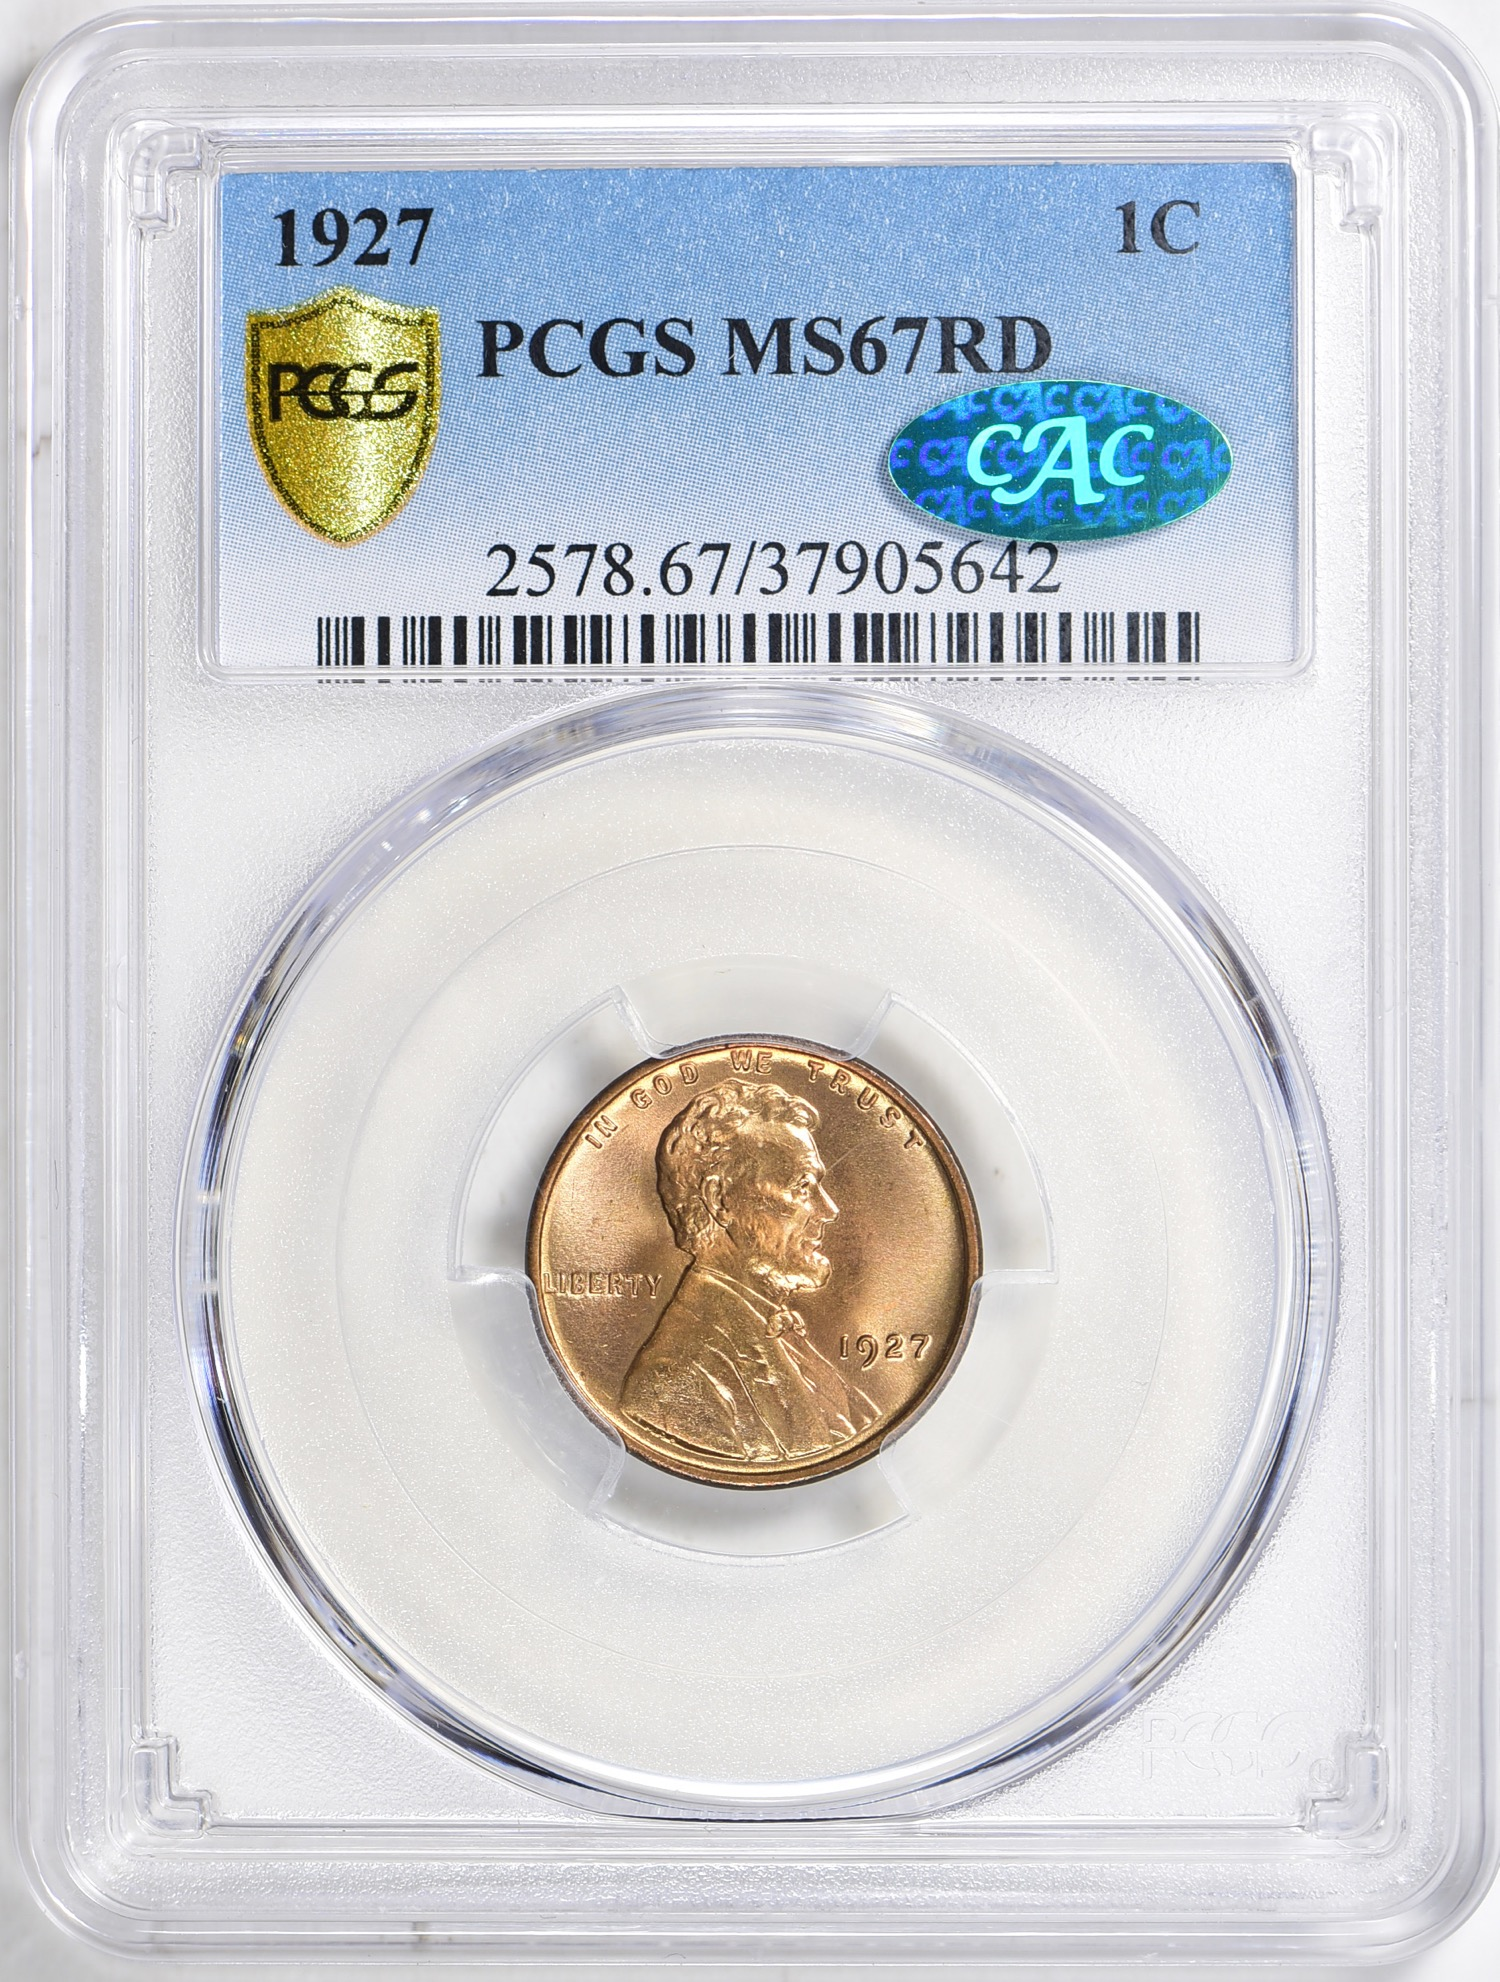 1927 MS67RD CAC - Acquired 6.19.19 GreatCollections. Pop is 55/15. Pre 1930 Lincolns always go for more than later coins with similar population numbers.